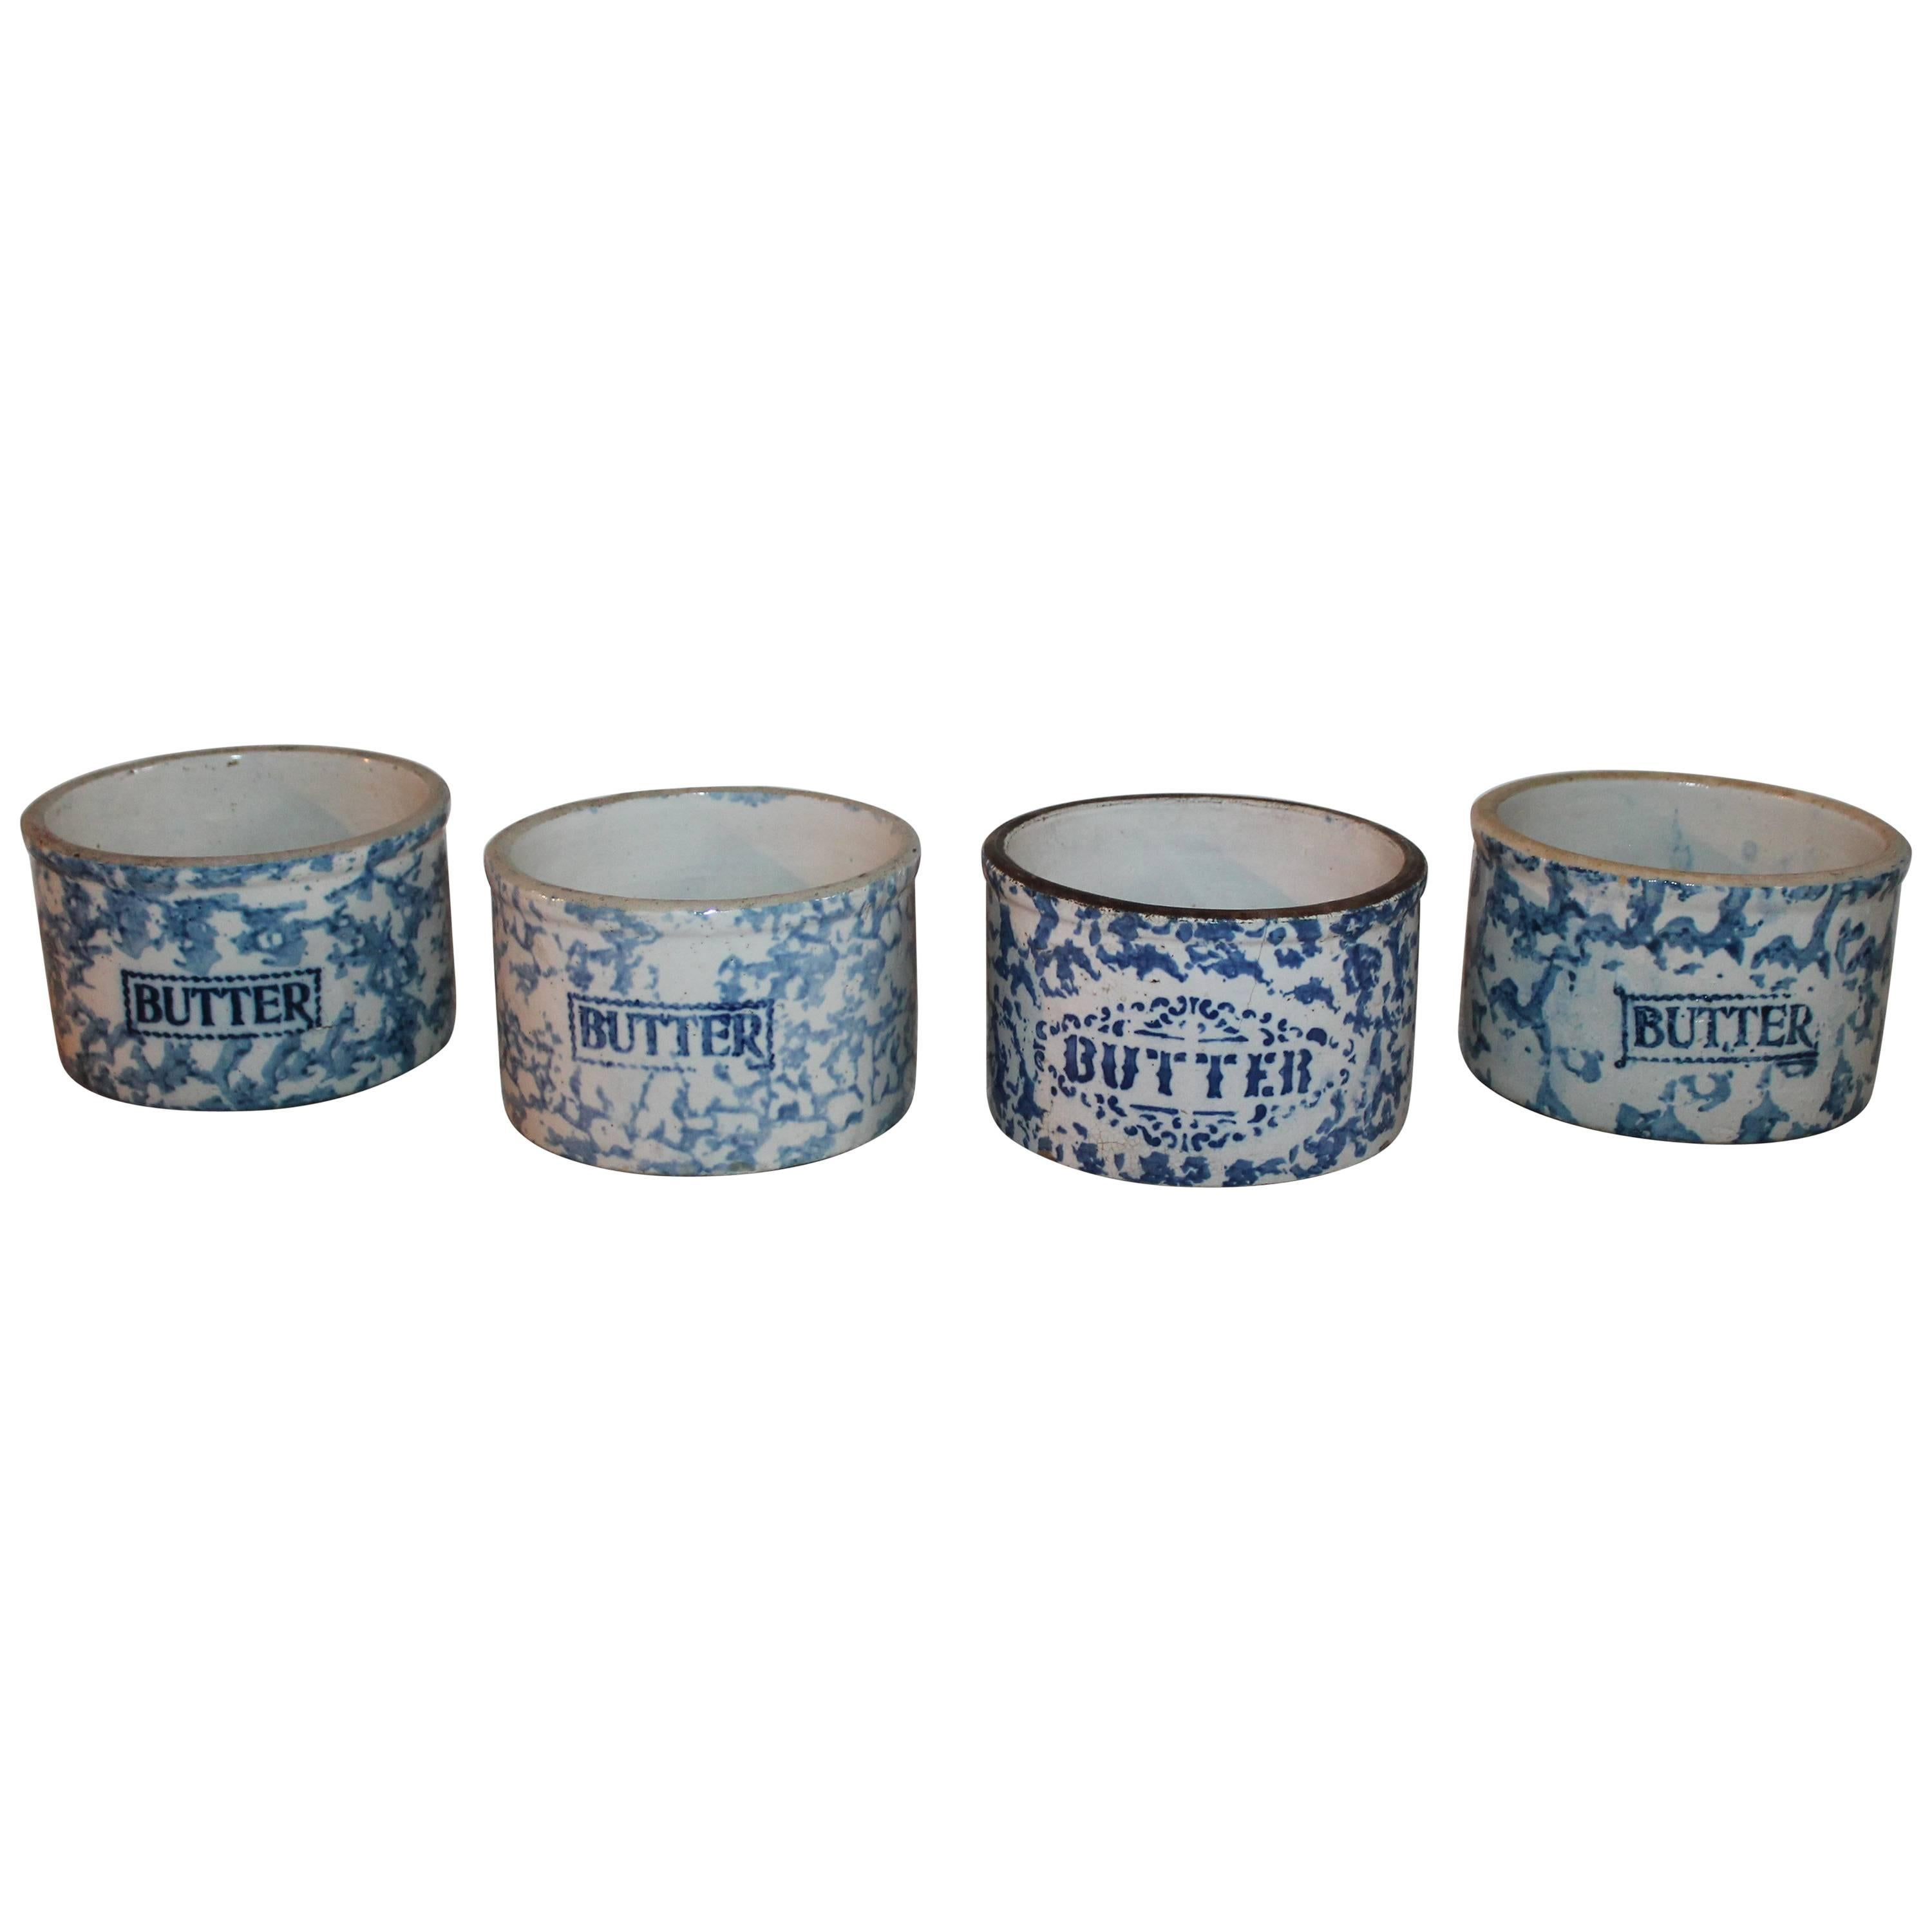 19th Century Sponge Ware Butter Crocks / Collection of Four